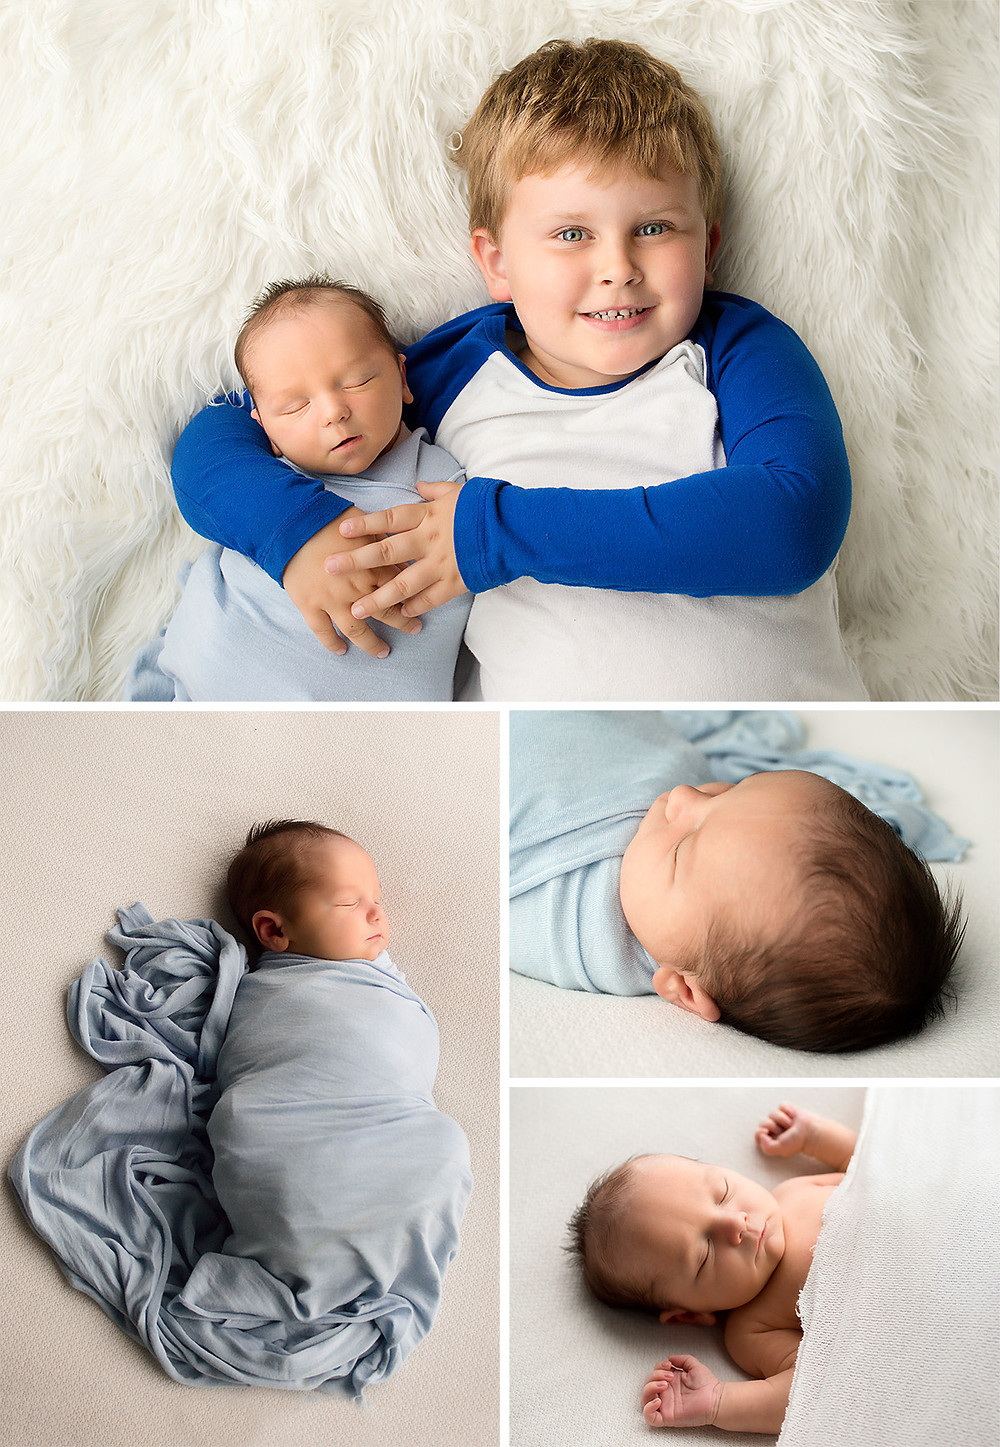 Nicole Hemeon Photography - kelowna newborn baby boy in blue wrap with big brother's arms wrapped around him on a fluffy white rug